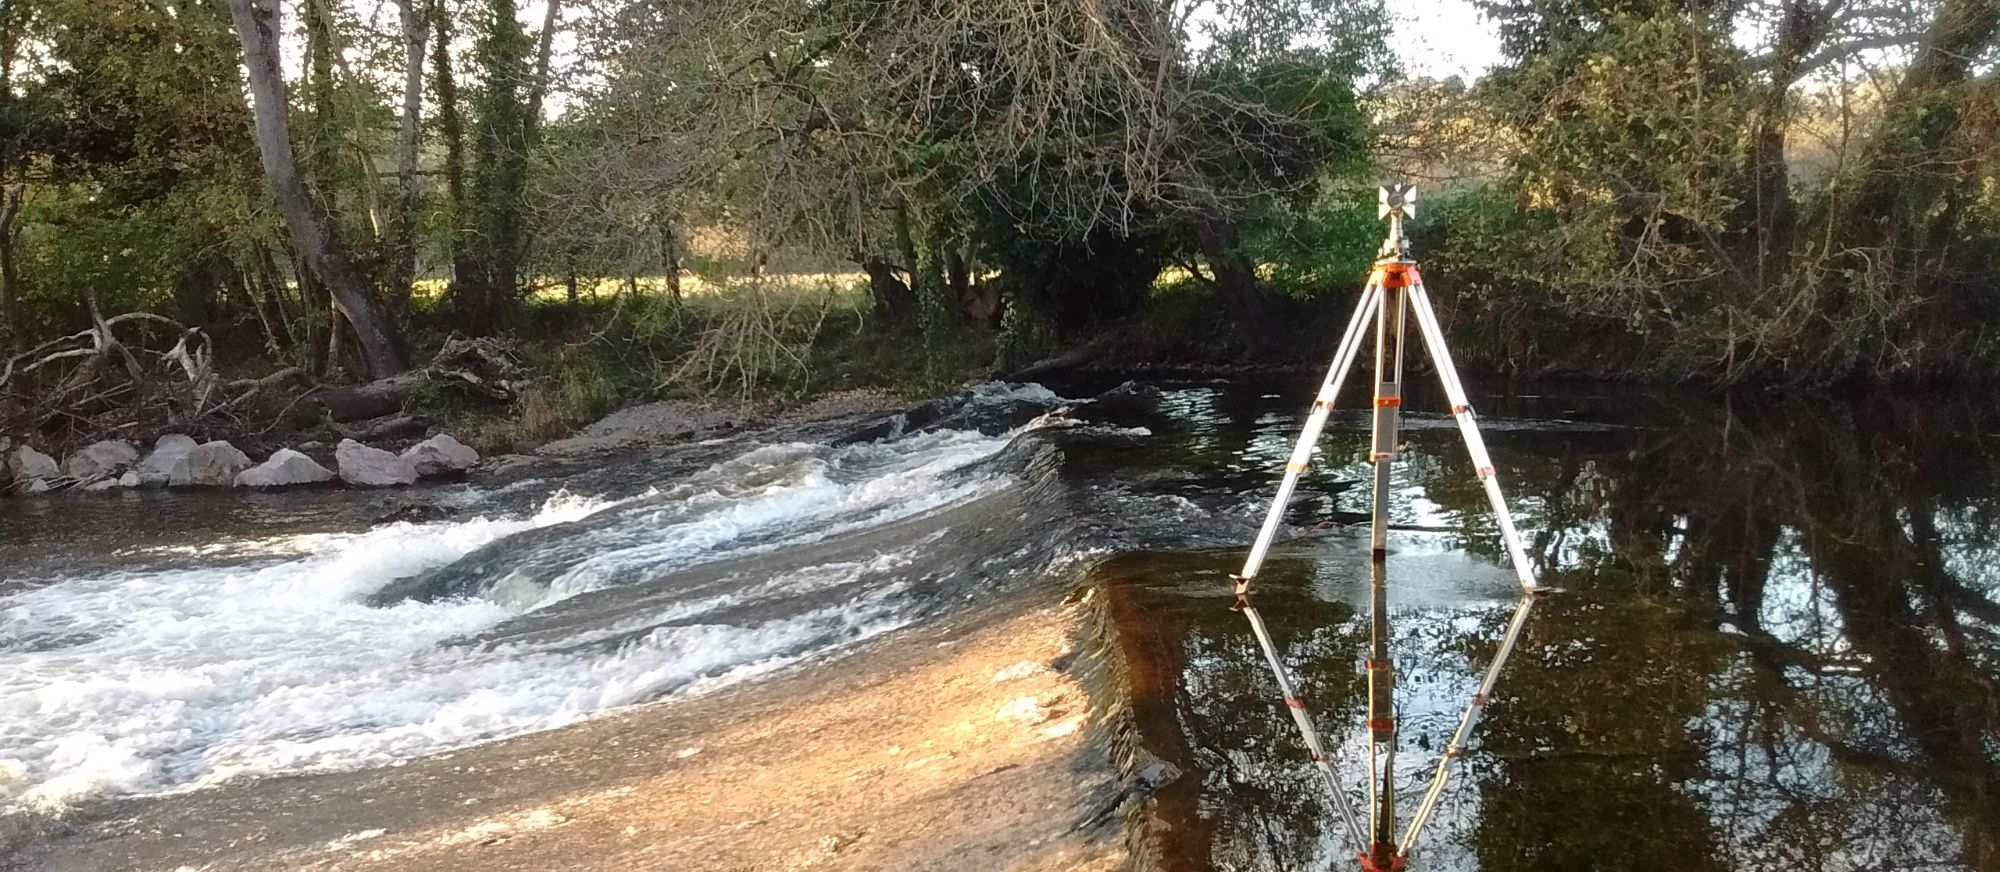 Survey of river weir in Devon